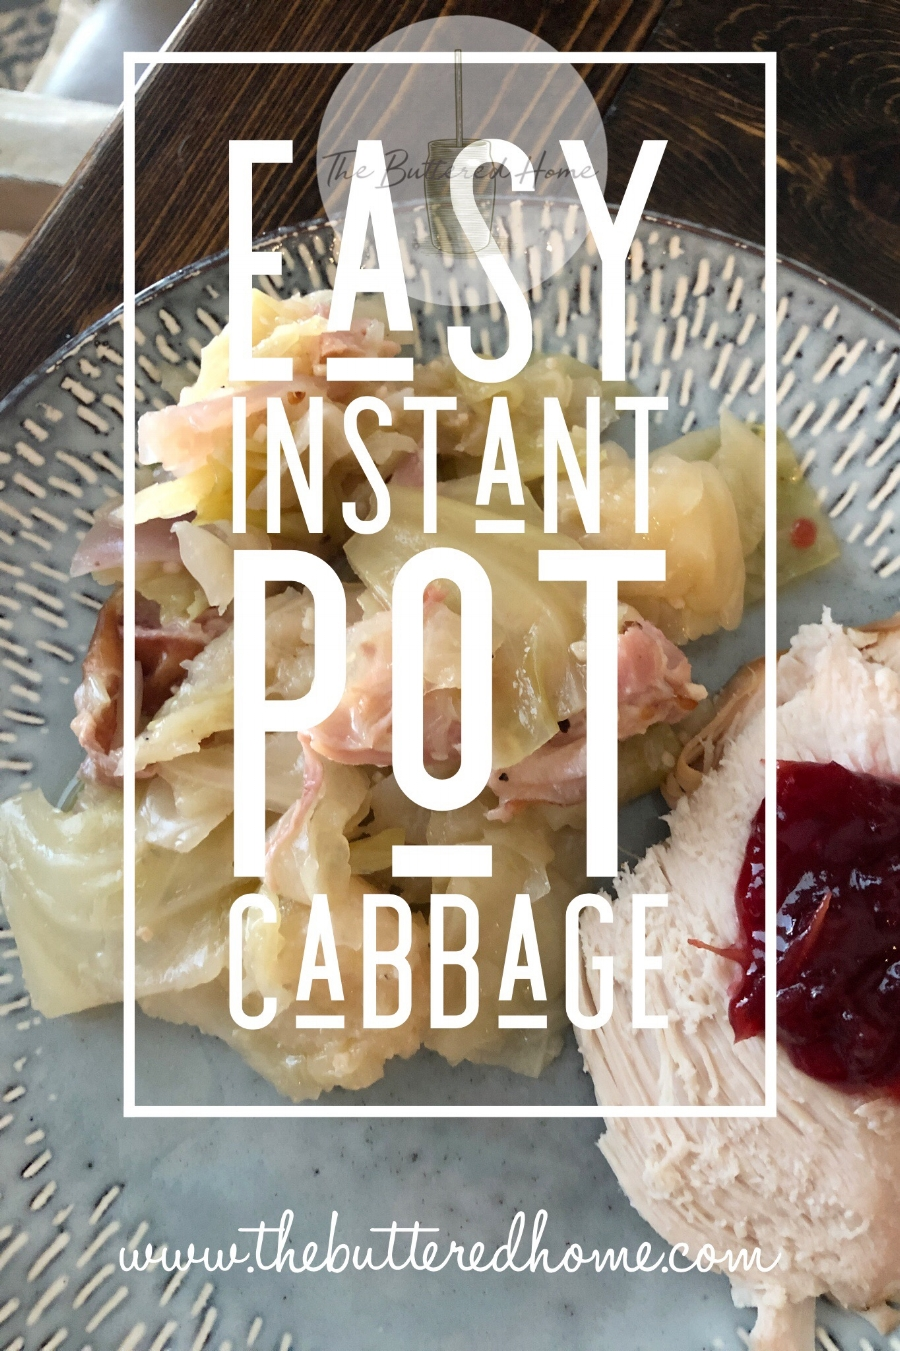 How to make the easiest cabbage, in your Instant Pot!